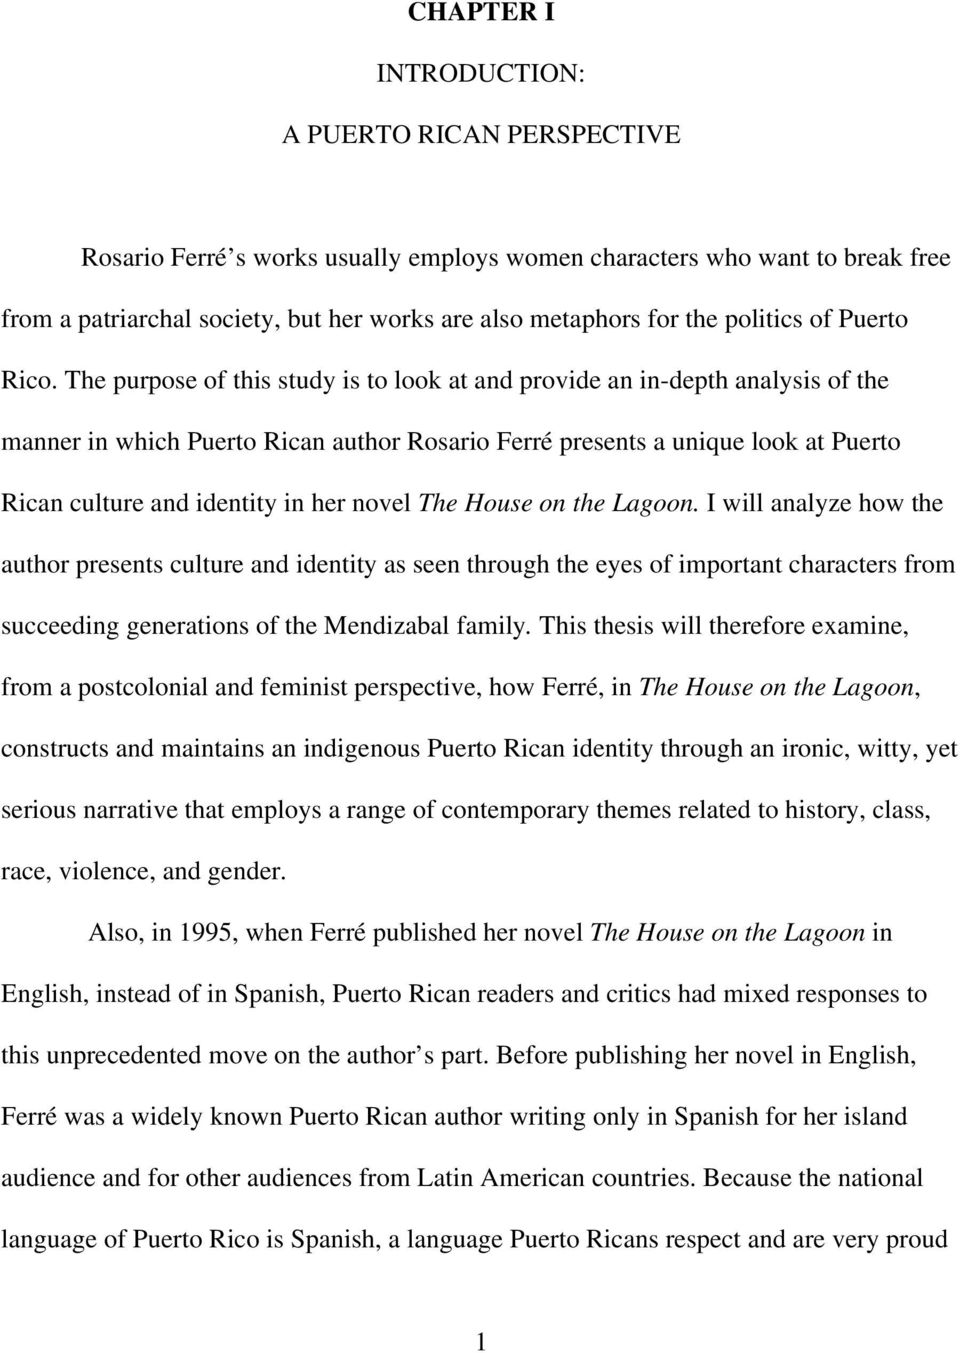 The purpose of this study is to look at and provide an in-depth analysis of the manner in which Puerto Rican author Rosario Ferré presents a unique look at Puerto Rican culture and identity in her